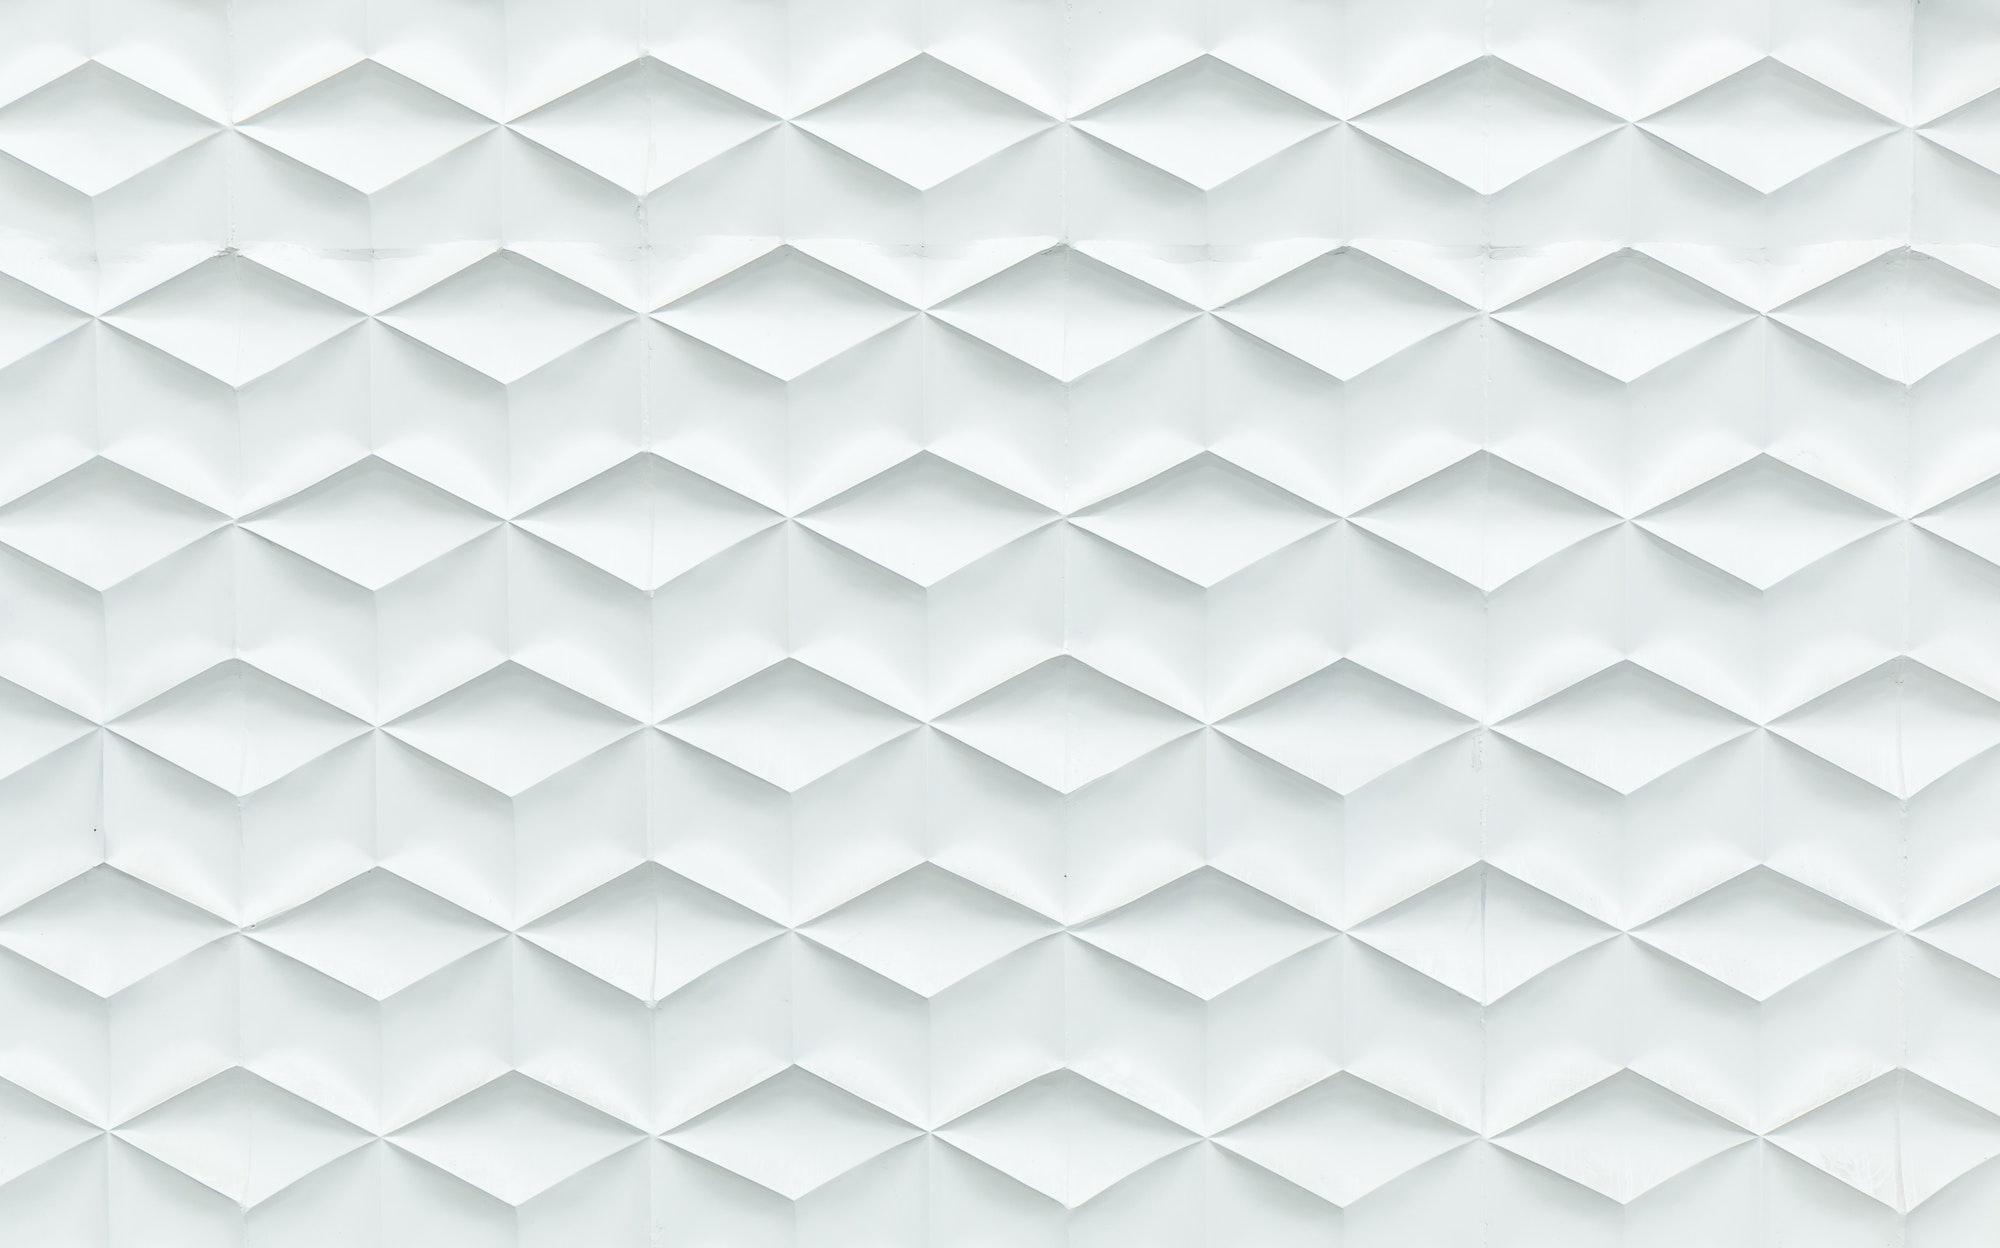 Abstract Cube design white building wall textured.